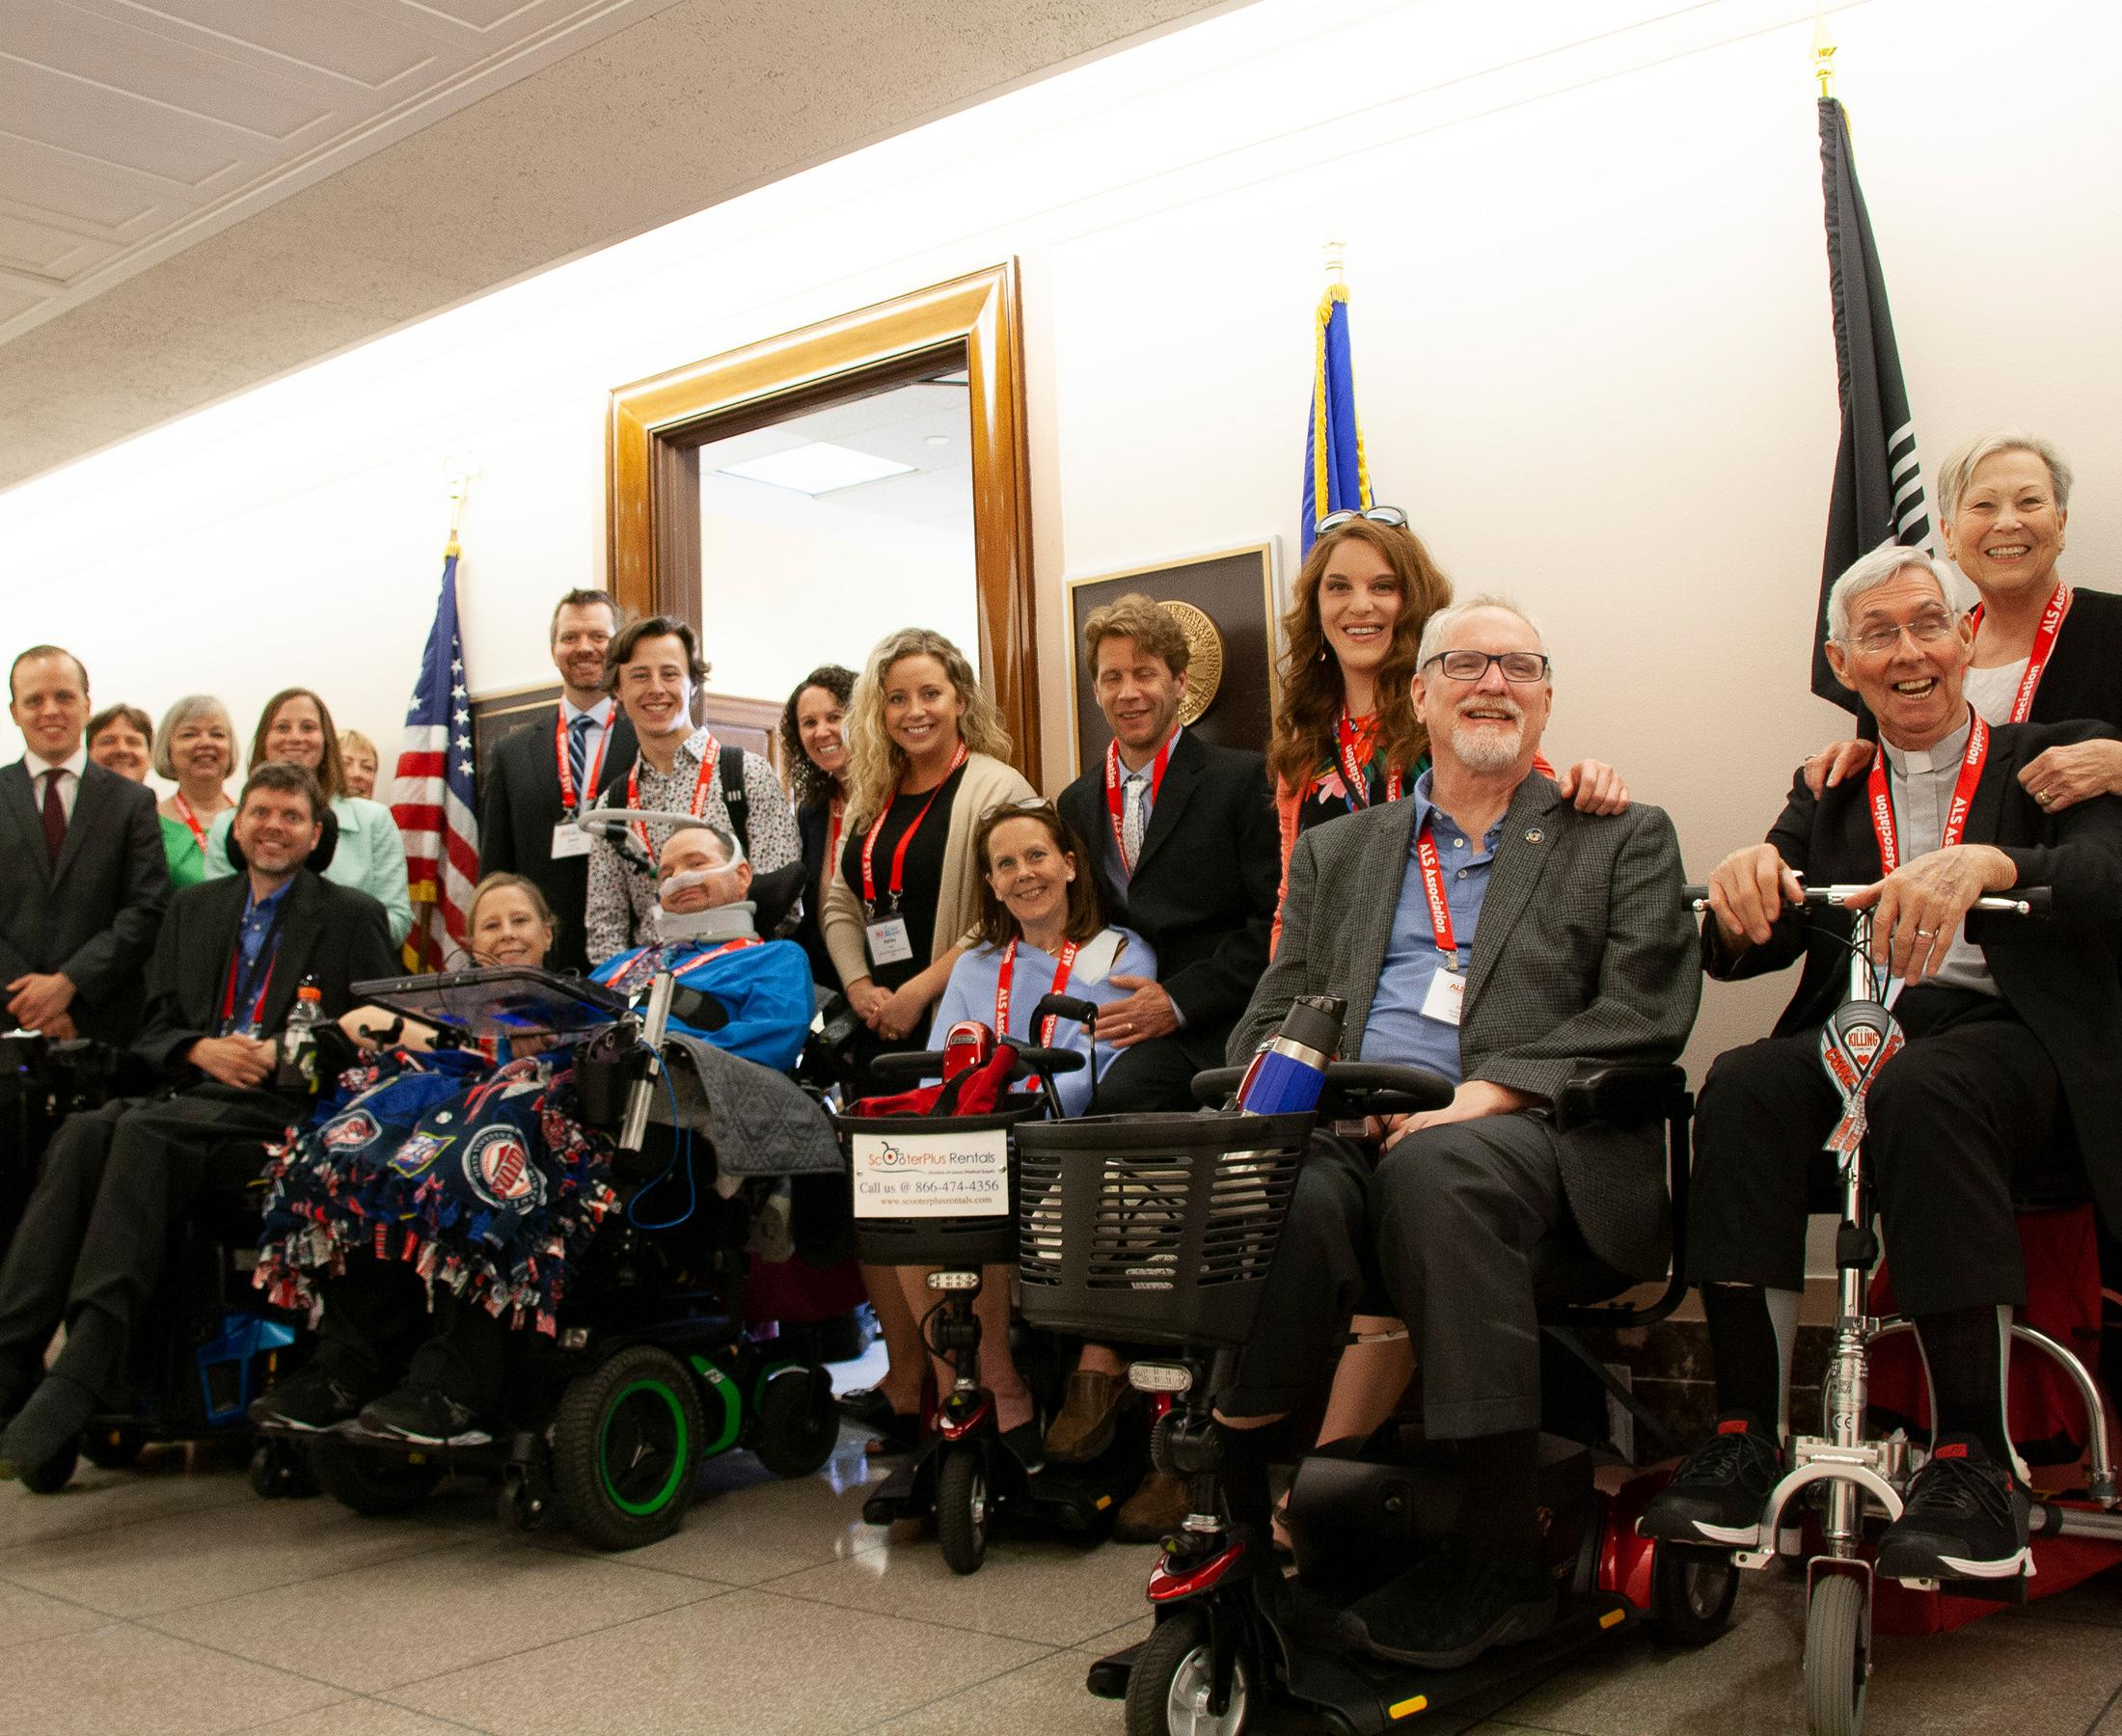 Group of advocates in the Senate building